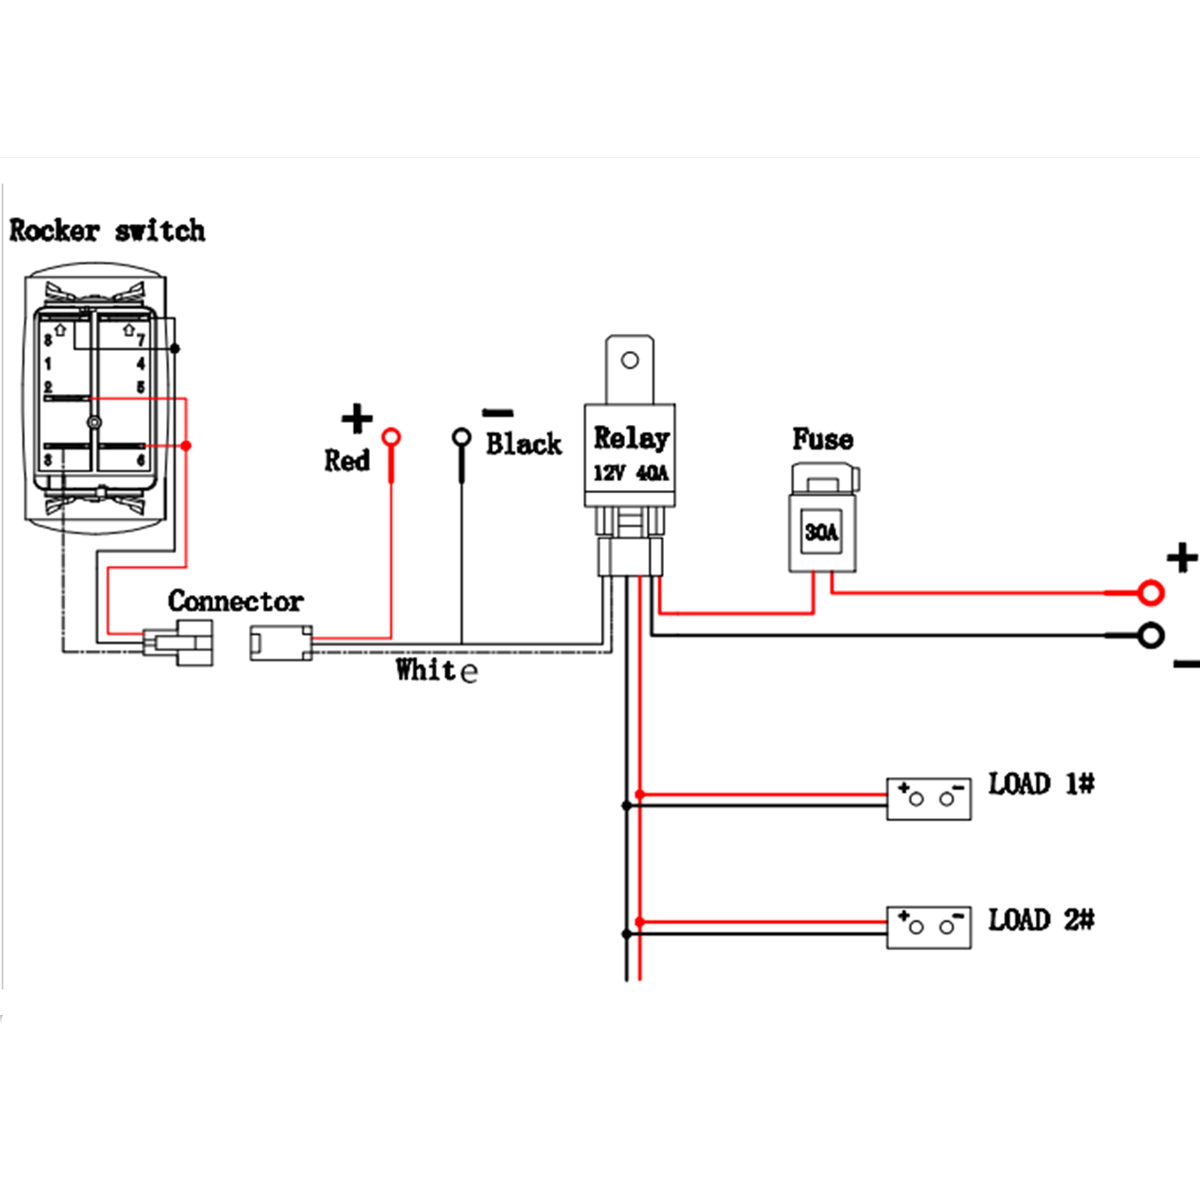 12v 40a 300w Relay Fuse Wiring Harness For Any 5pin Led Light Rocker Off Road Light Relay Wiring Diagram on how does a heat pump work diagram, mercedes-benz 2000 s500 fuse box diagram, fuse and relay diagram, kc light relay diagram, from 1993 nissan pathfinder battery wiring diagram, jeep cj7 light diagram, off-road light electrical diagram,